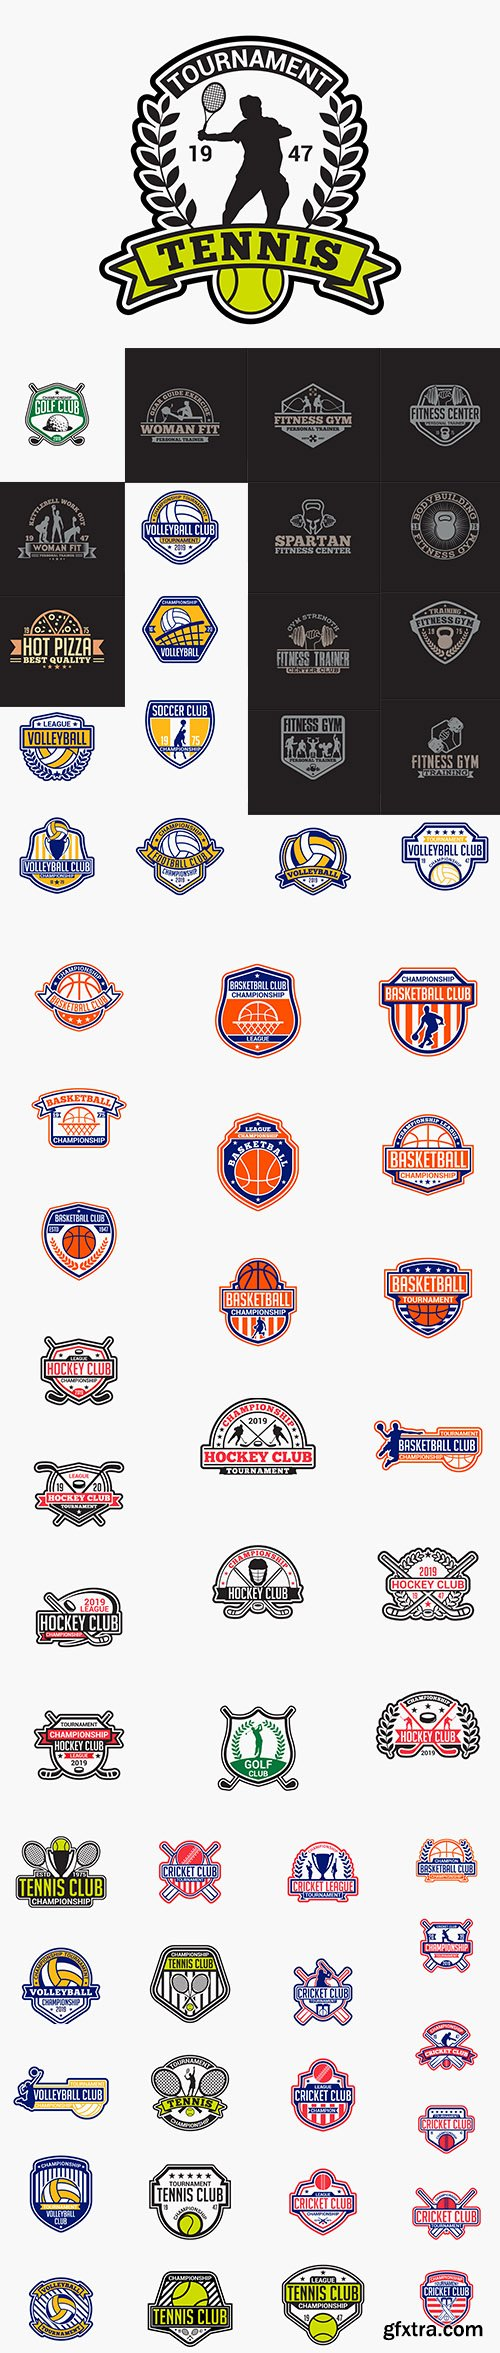 Volleyball, Tenis, Fitness, Golf, Hockey, Cricket and Basketball Club Badge Collections